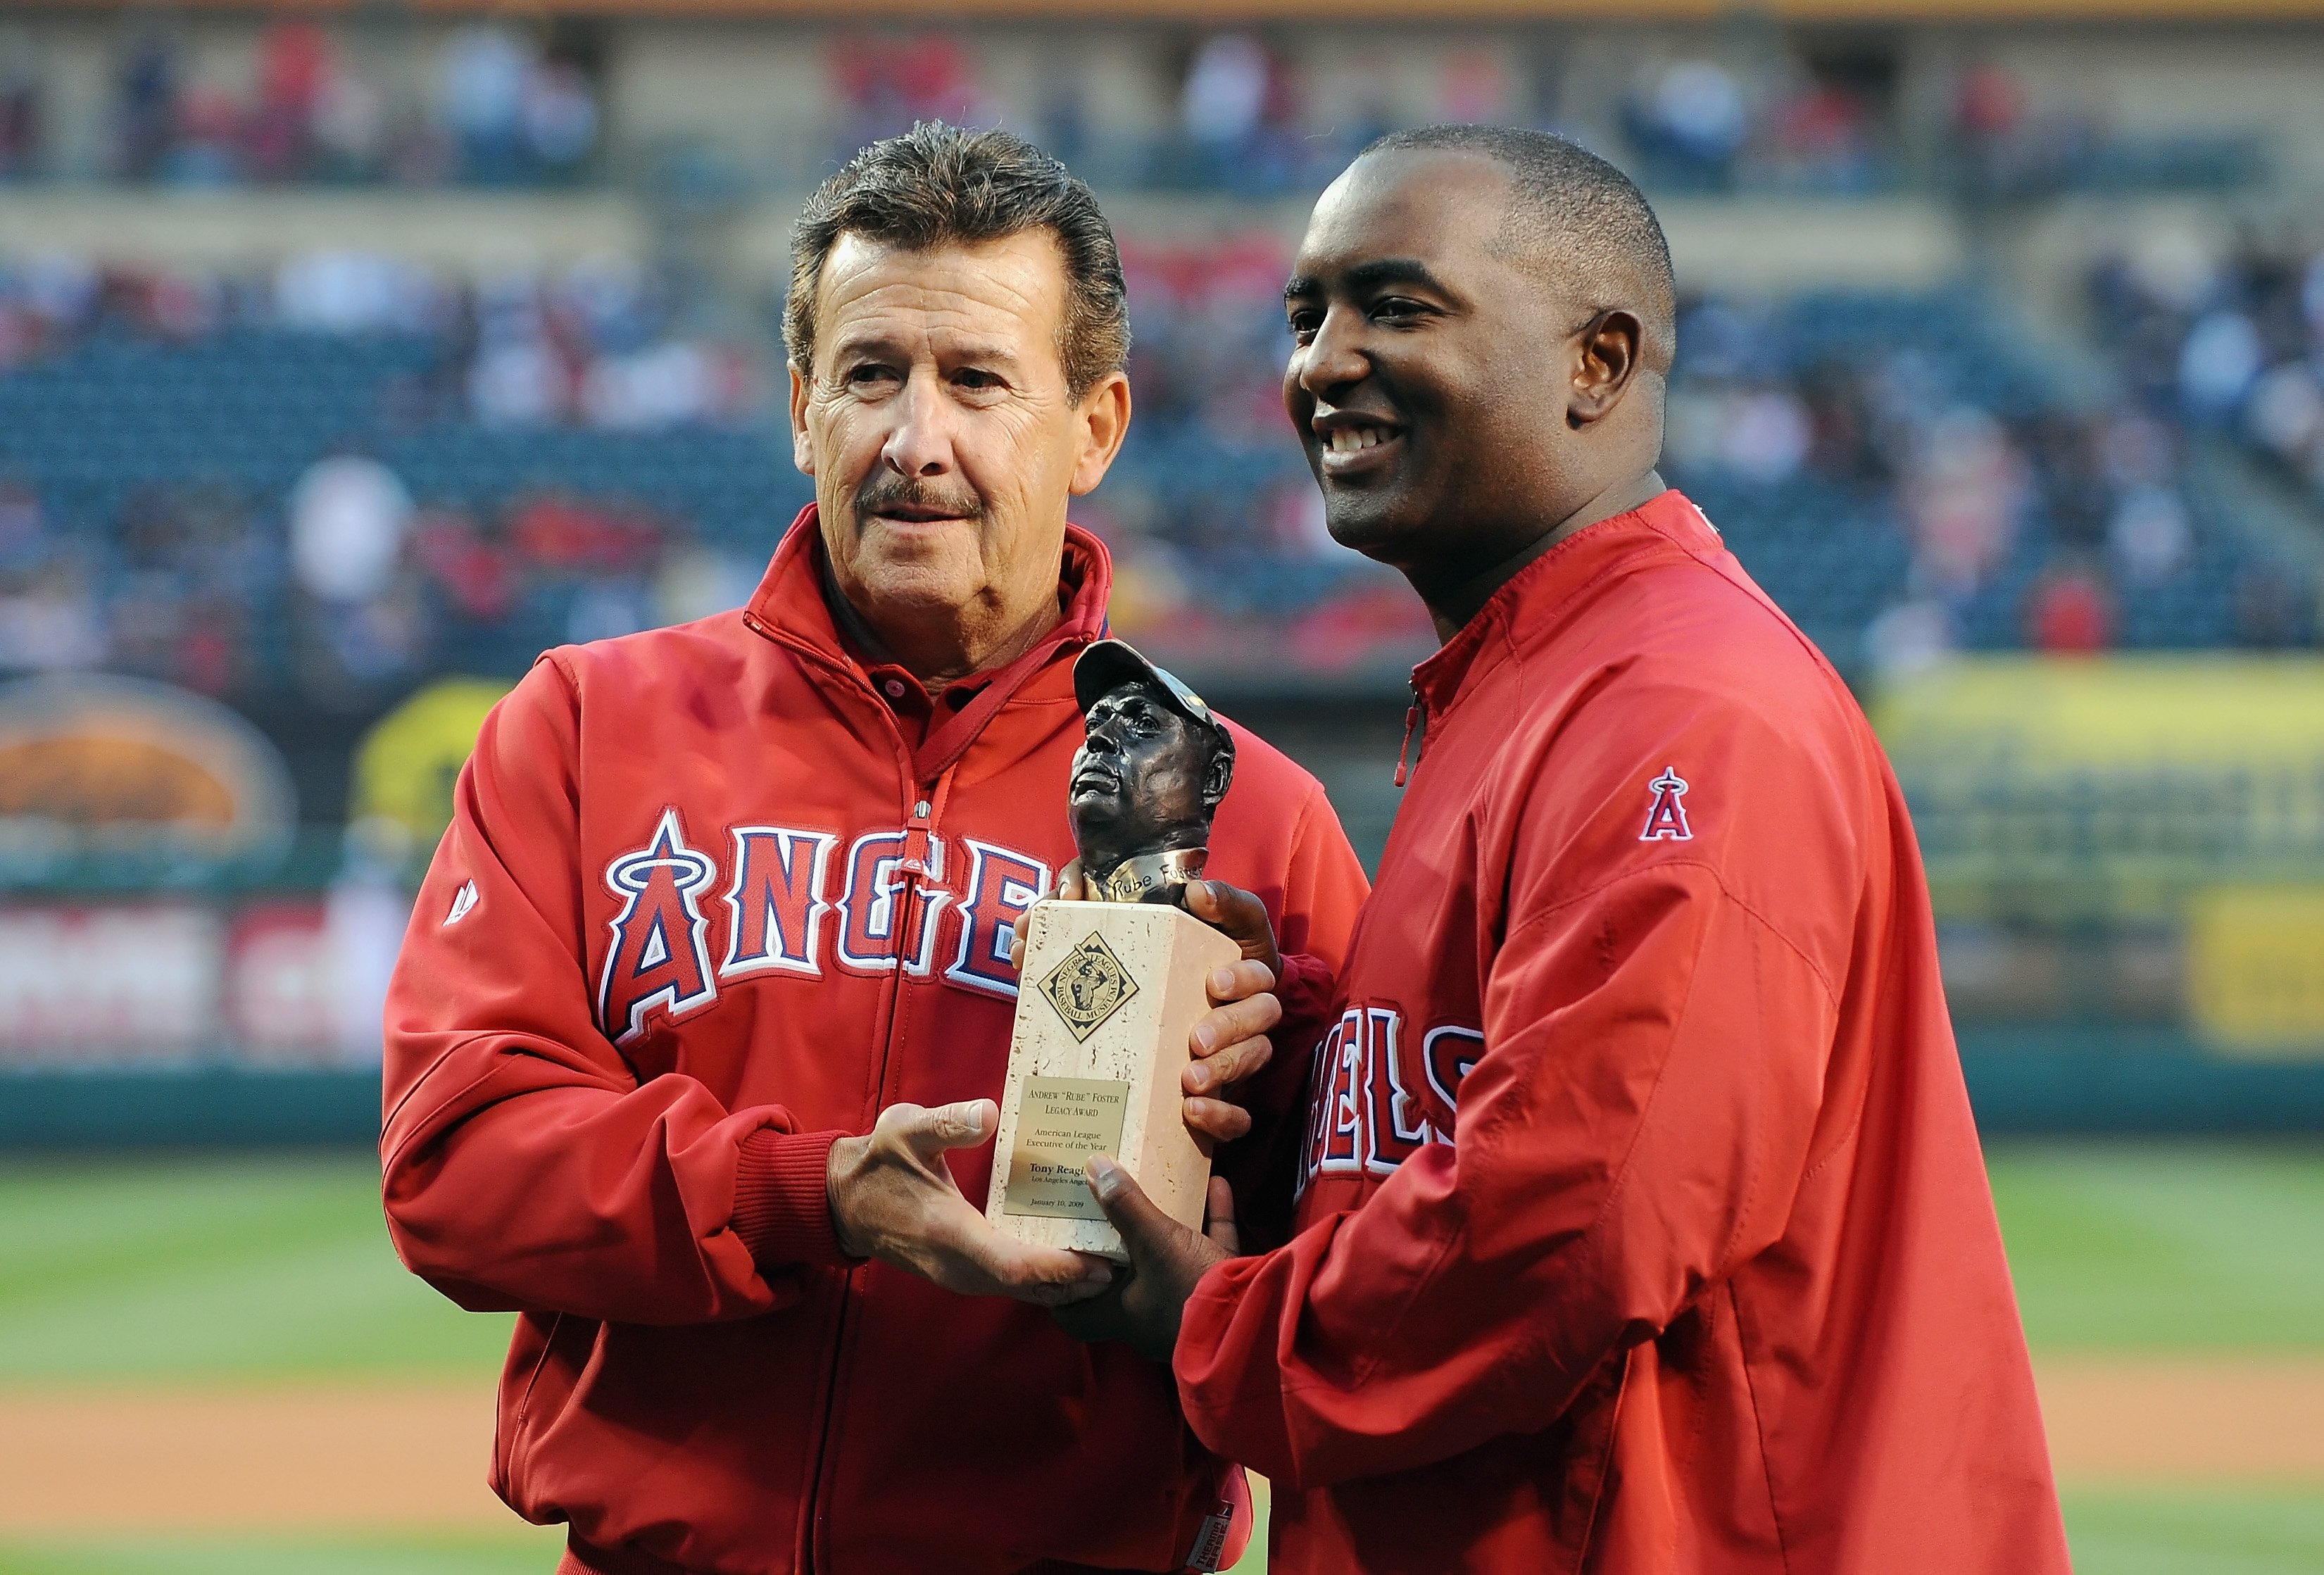 ANAHEIM, CA - APRIL 07:  Owner of the Los Angeles Angels of Anaheim Arturo Moreno presents Tony Reagins with the Andrew Foster Legacy Award before the game against the Oakland Athletics on April 7, 2009 in Anaheim, California.  (Photo by Lisa Blumenfeld/G